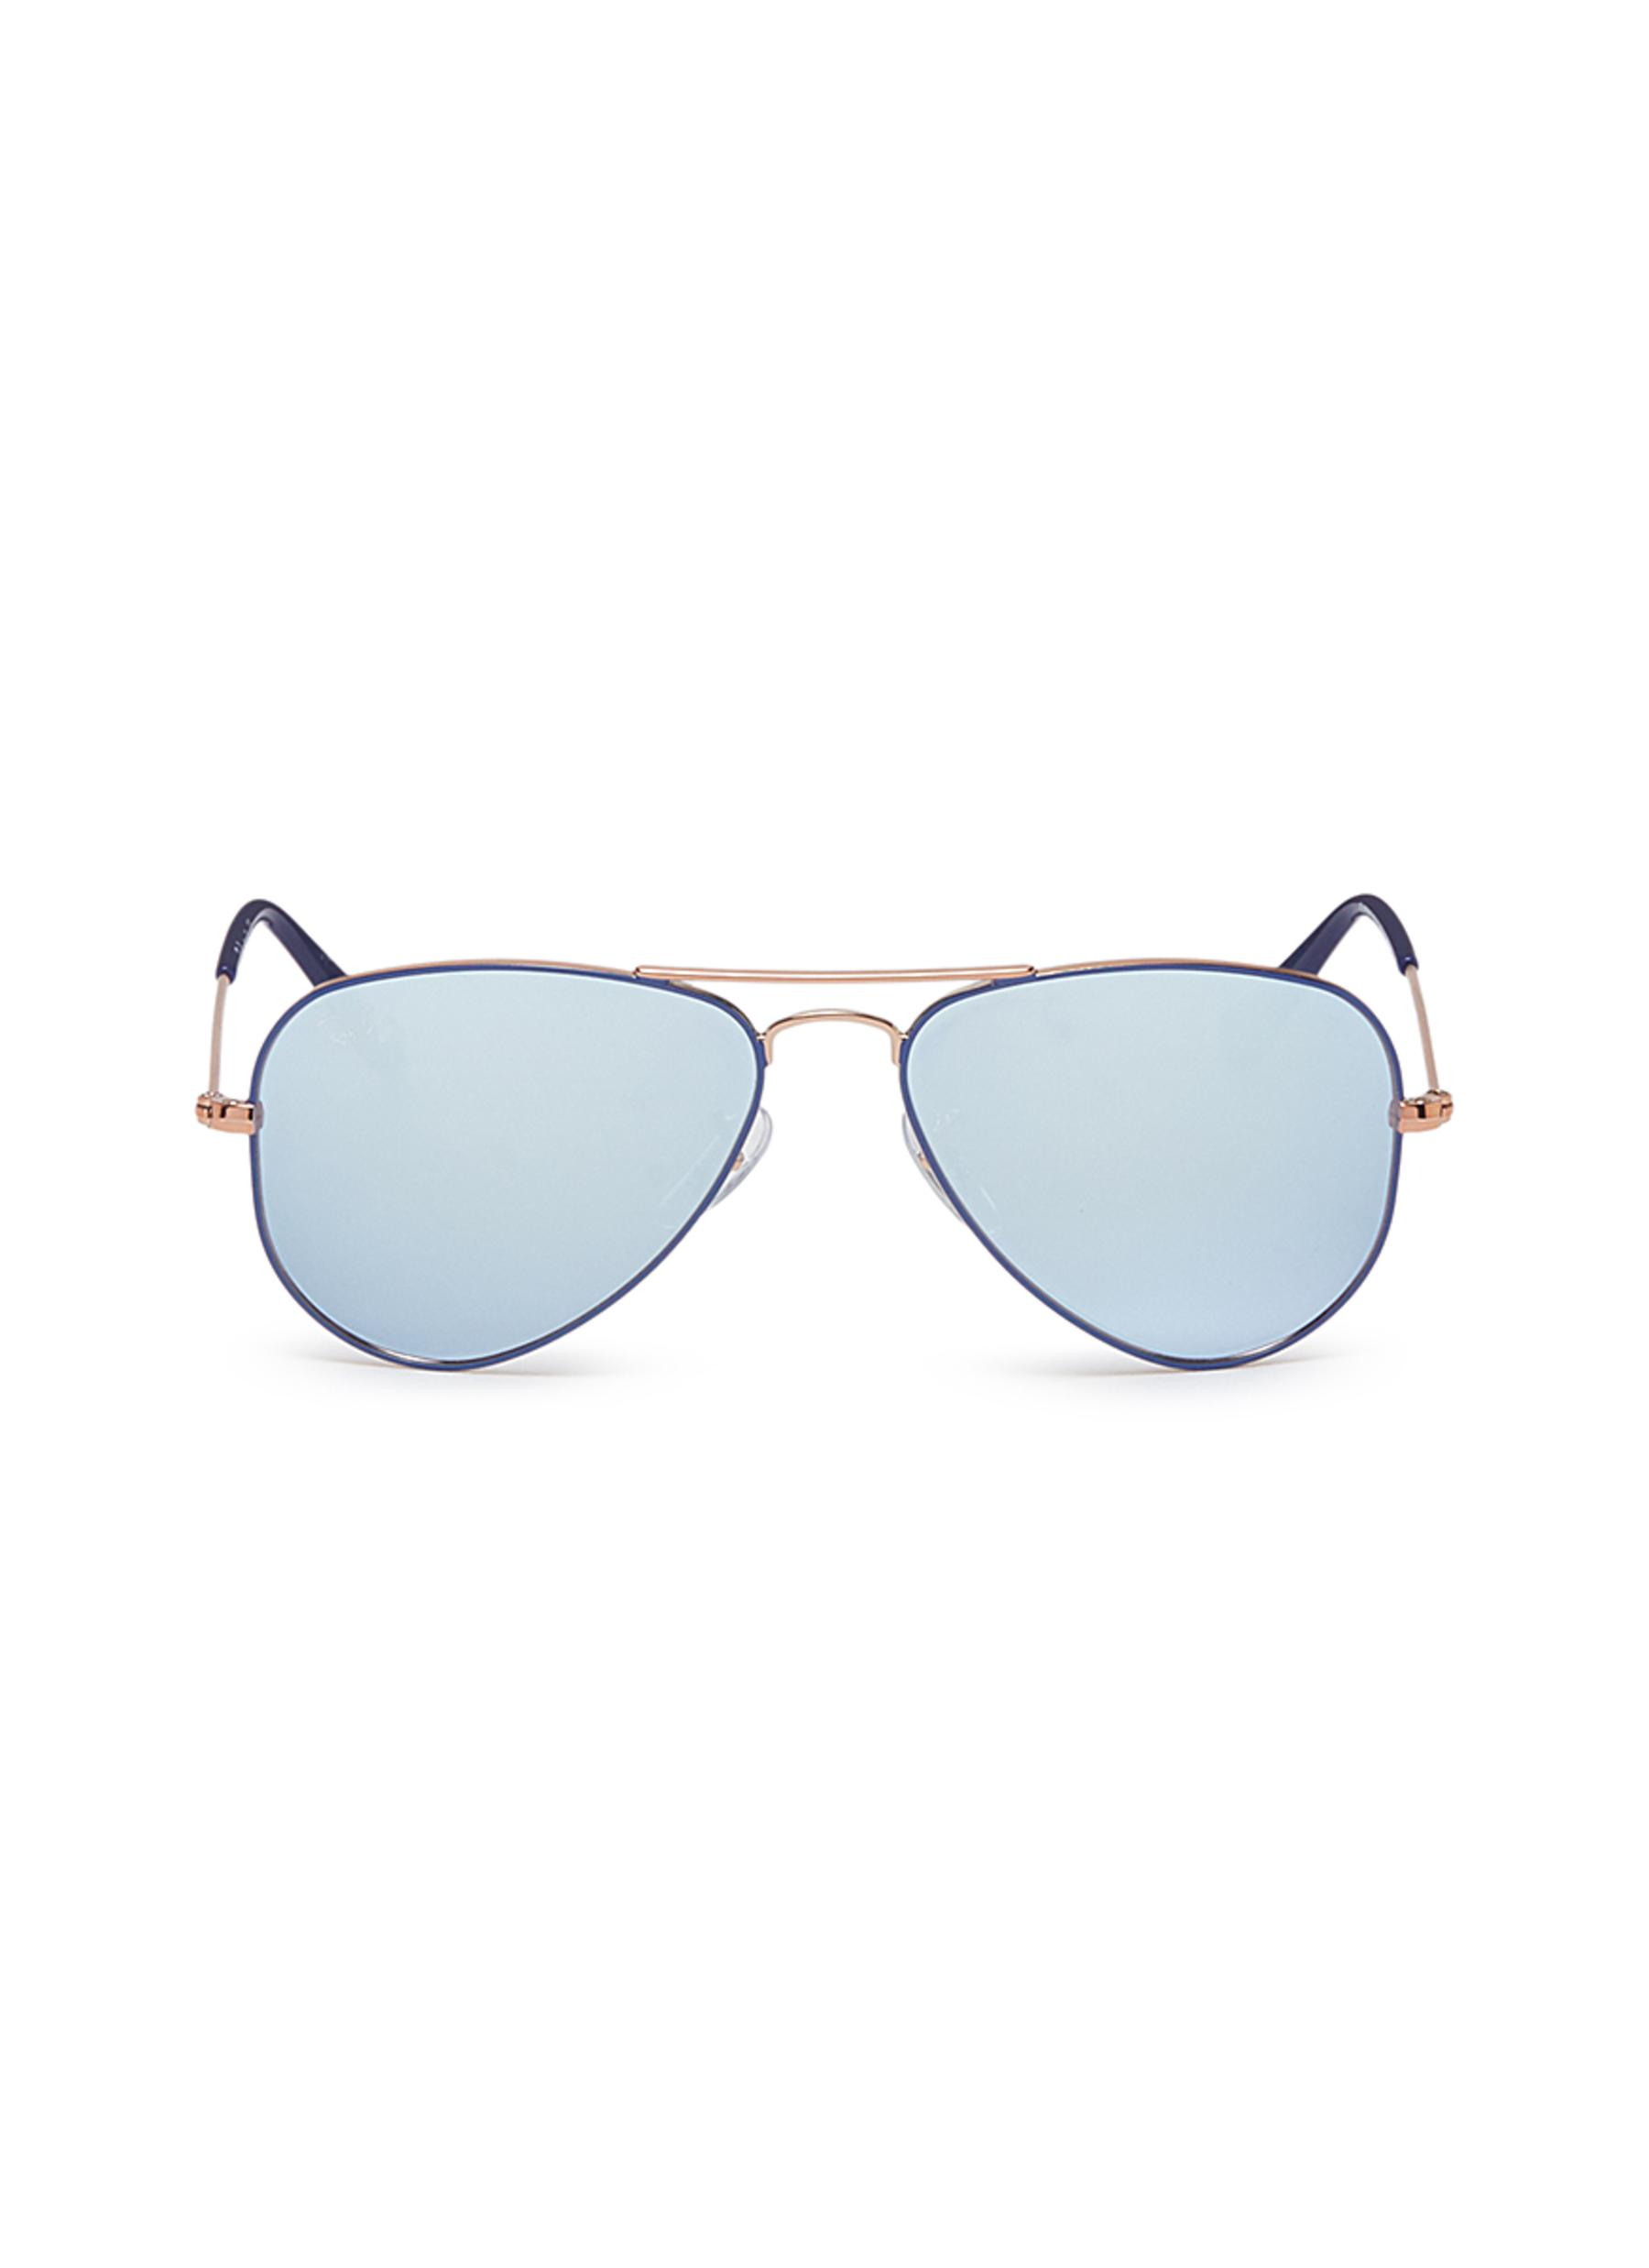 6ab24be25eb02 czech buyray ban rb3025 original aviator sunglasses blue online at  johnlewis 0fe11 a2706  cheap main view click to enlarge ray ban rj9506s  metal aviator ...